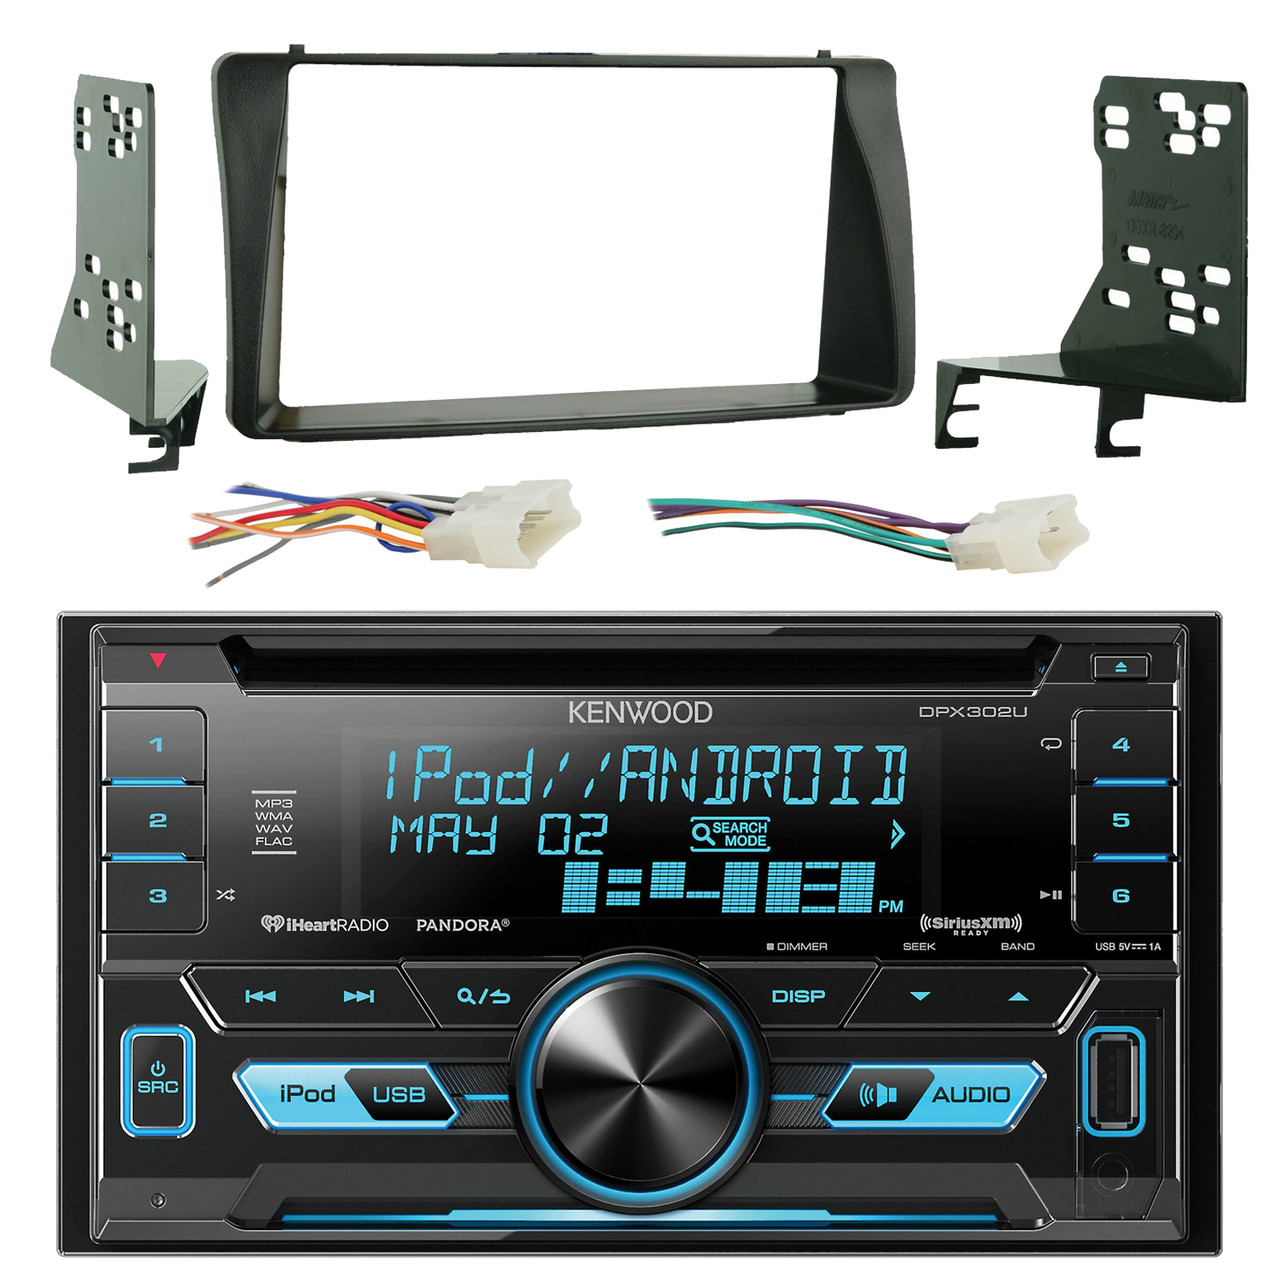 kenwood dpx302u double 2 din cd receiver with front usb aux inputs sirius xm [ 1280 x 1280 Pixel ]